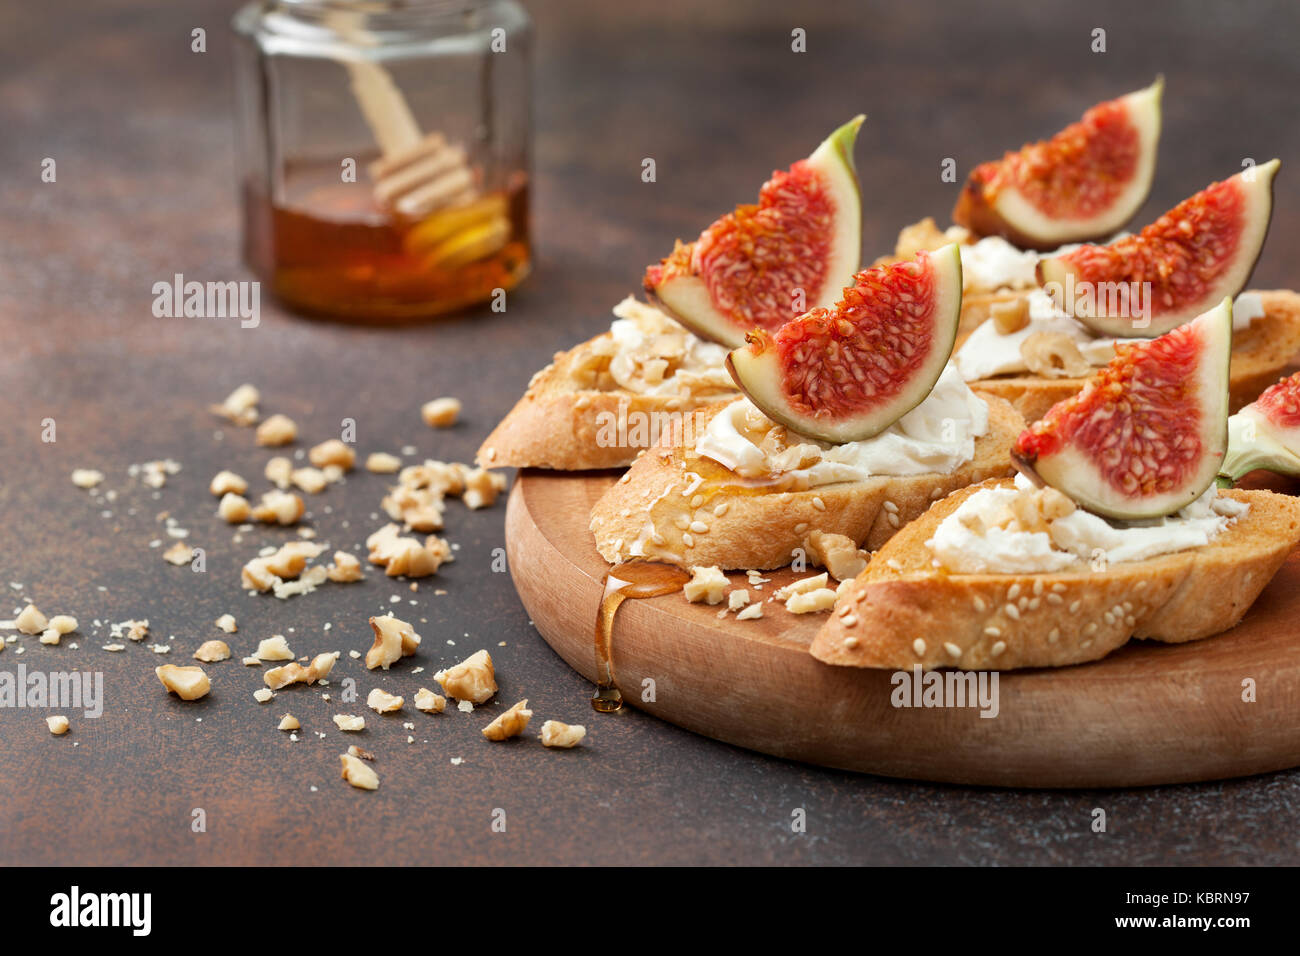 sandwiches with figs, ricotta, honey and walnuts on a brown background - Stock Image